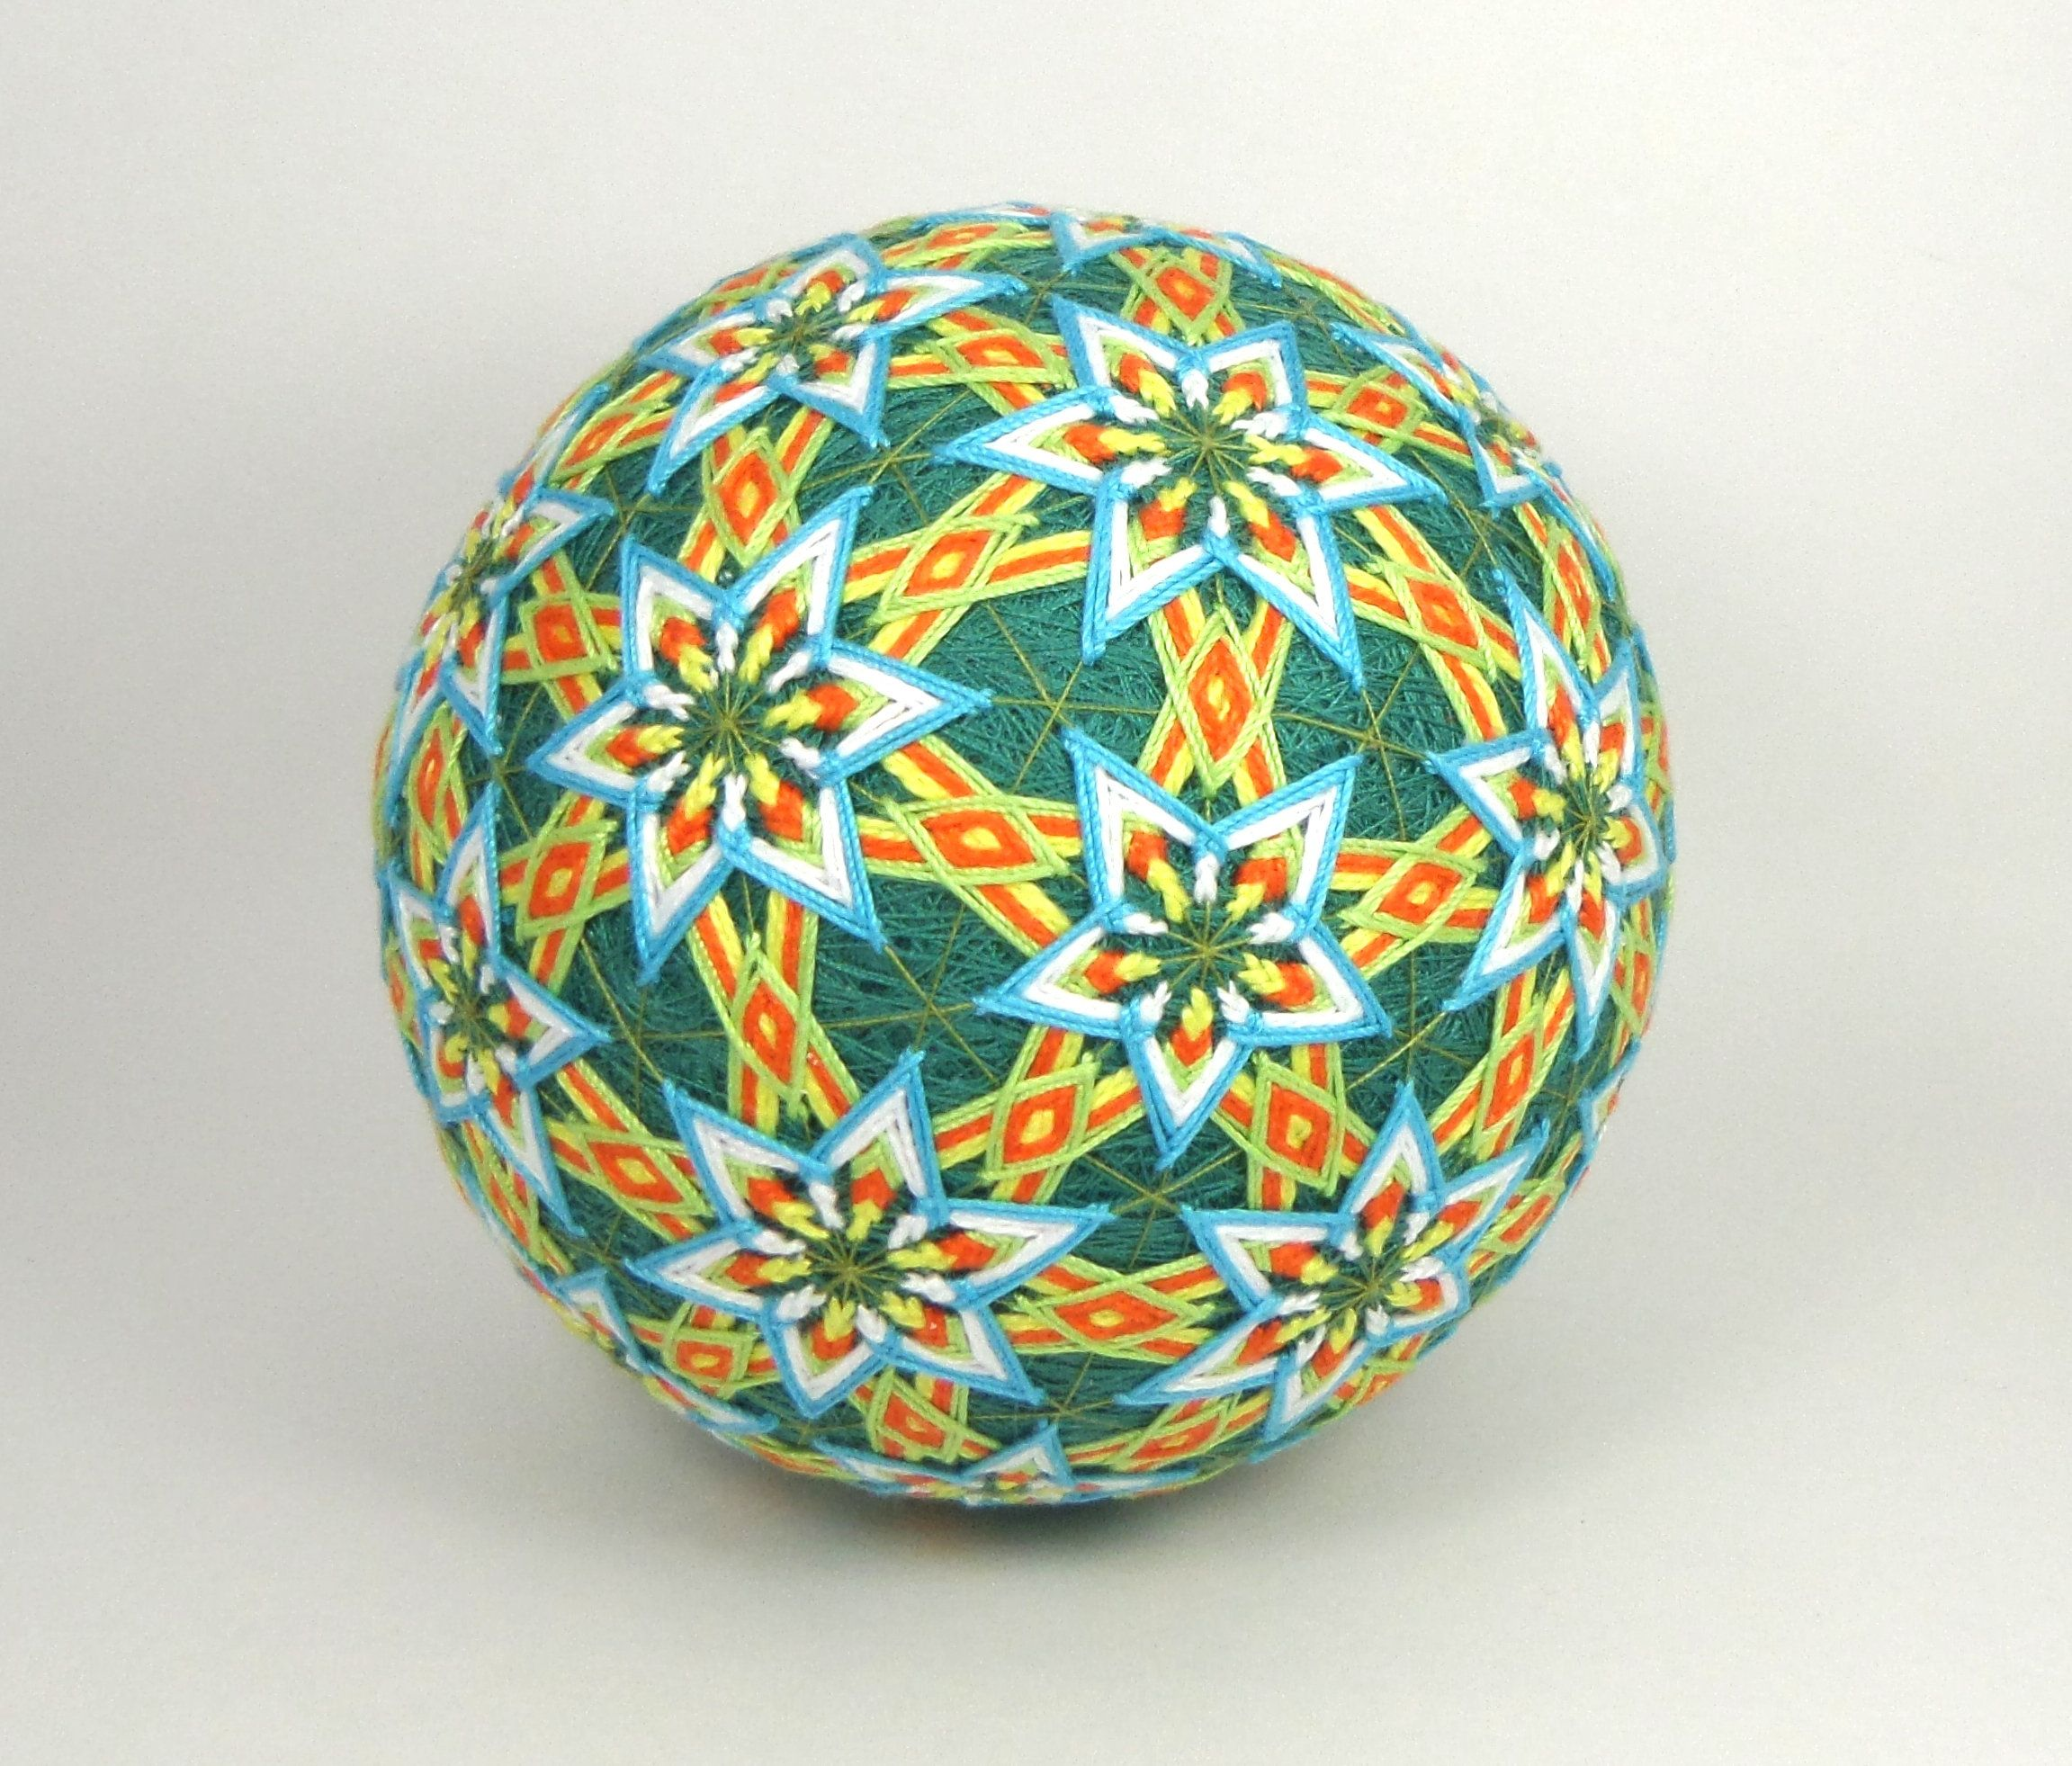 Japanese Temari Ball Handmade Decor Gift Temari Pinterest